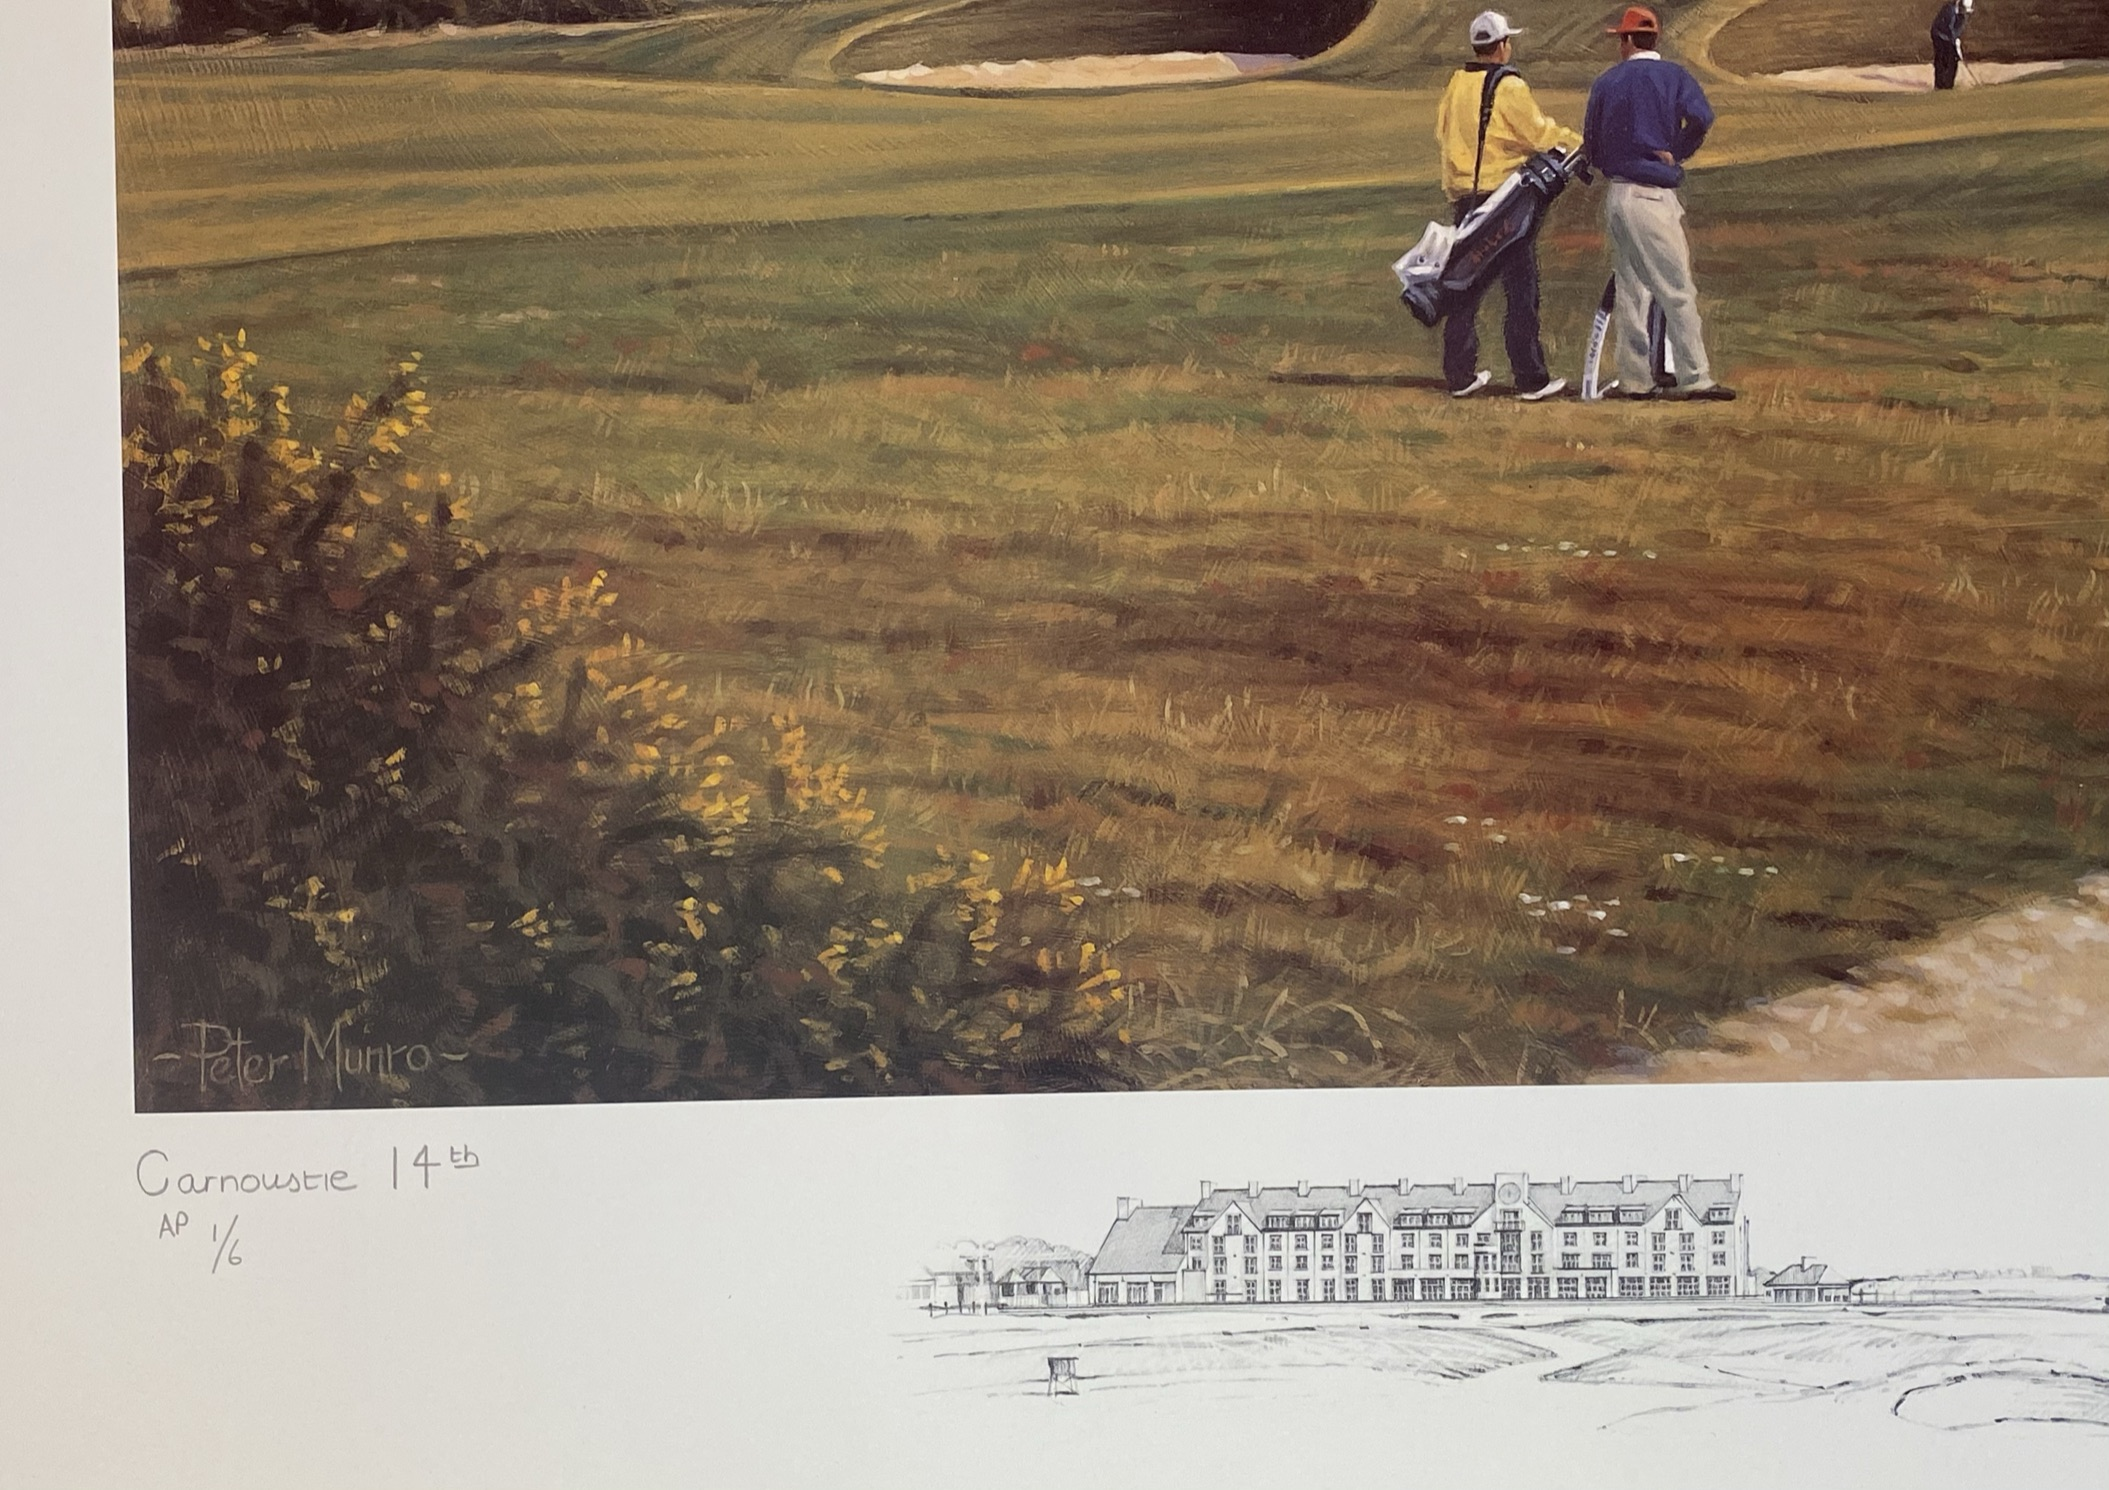 Carnoustie 14th golfing print signed A/P by Scottish artist Peter Munro - Image 4 of 4